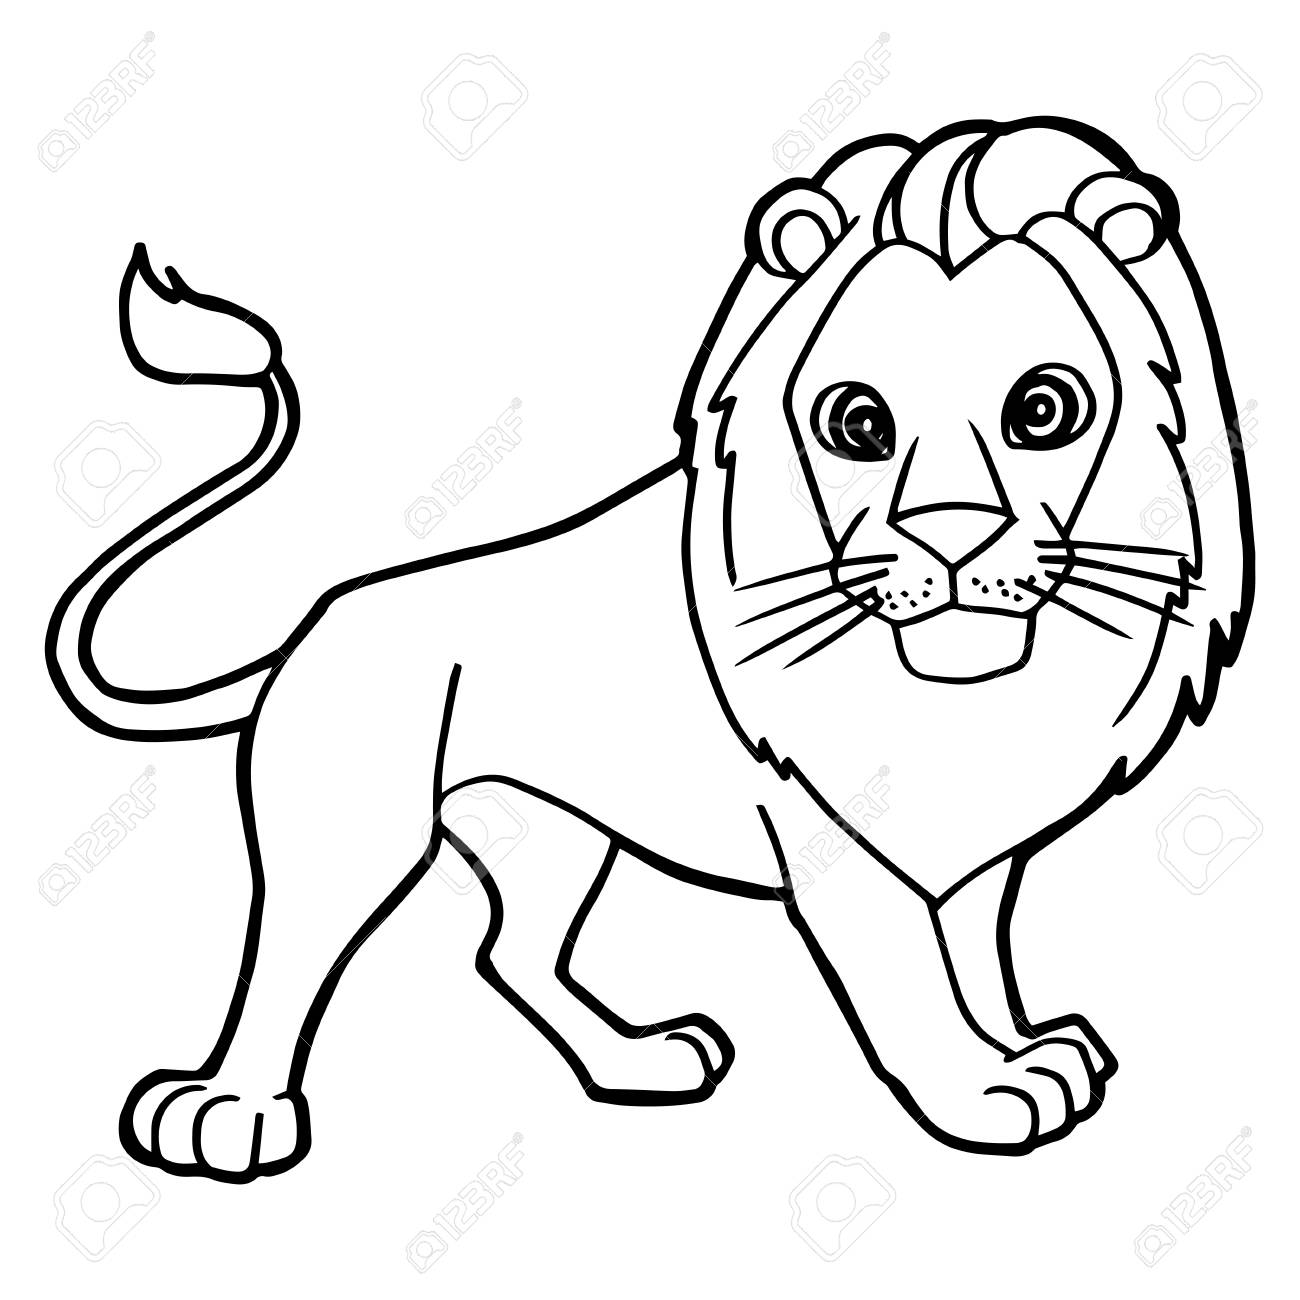 Cartoon Cute Lion Coloring Page Vector Illustration Stock